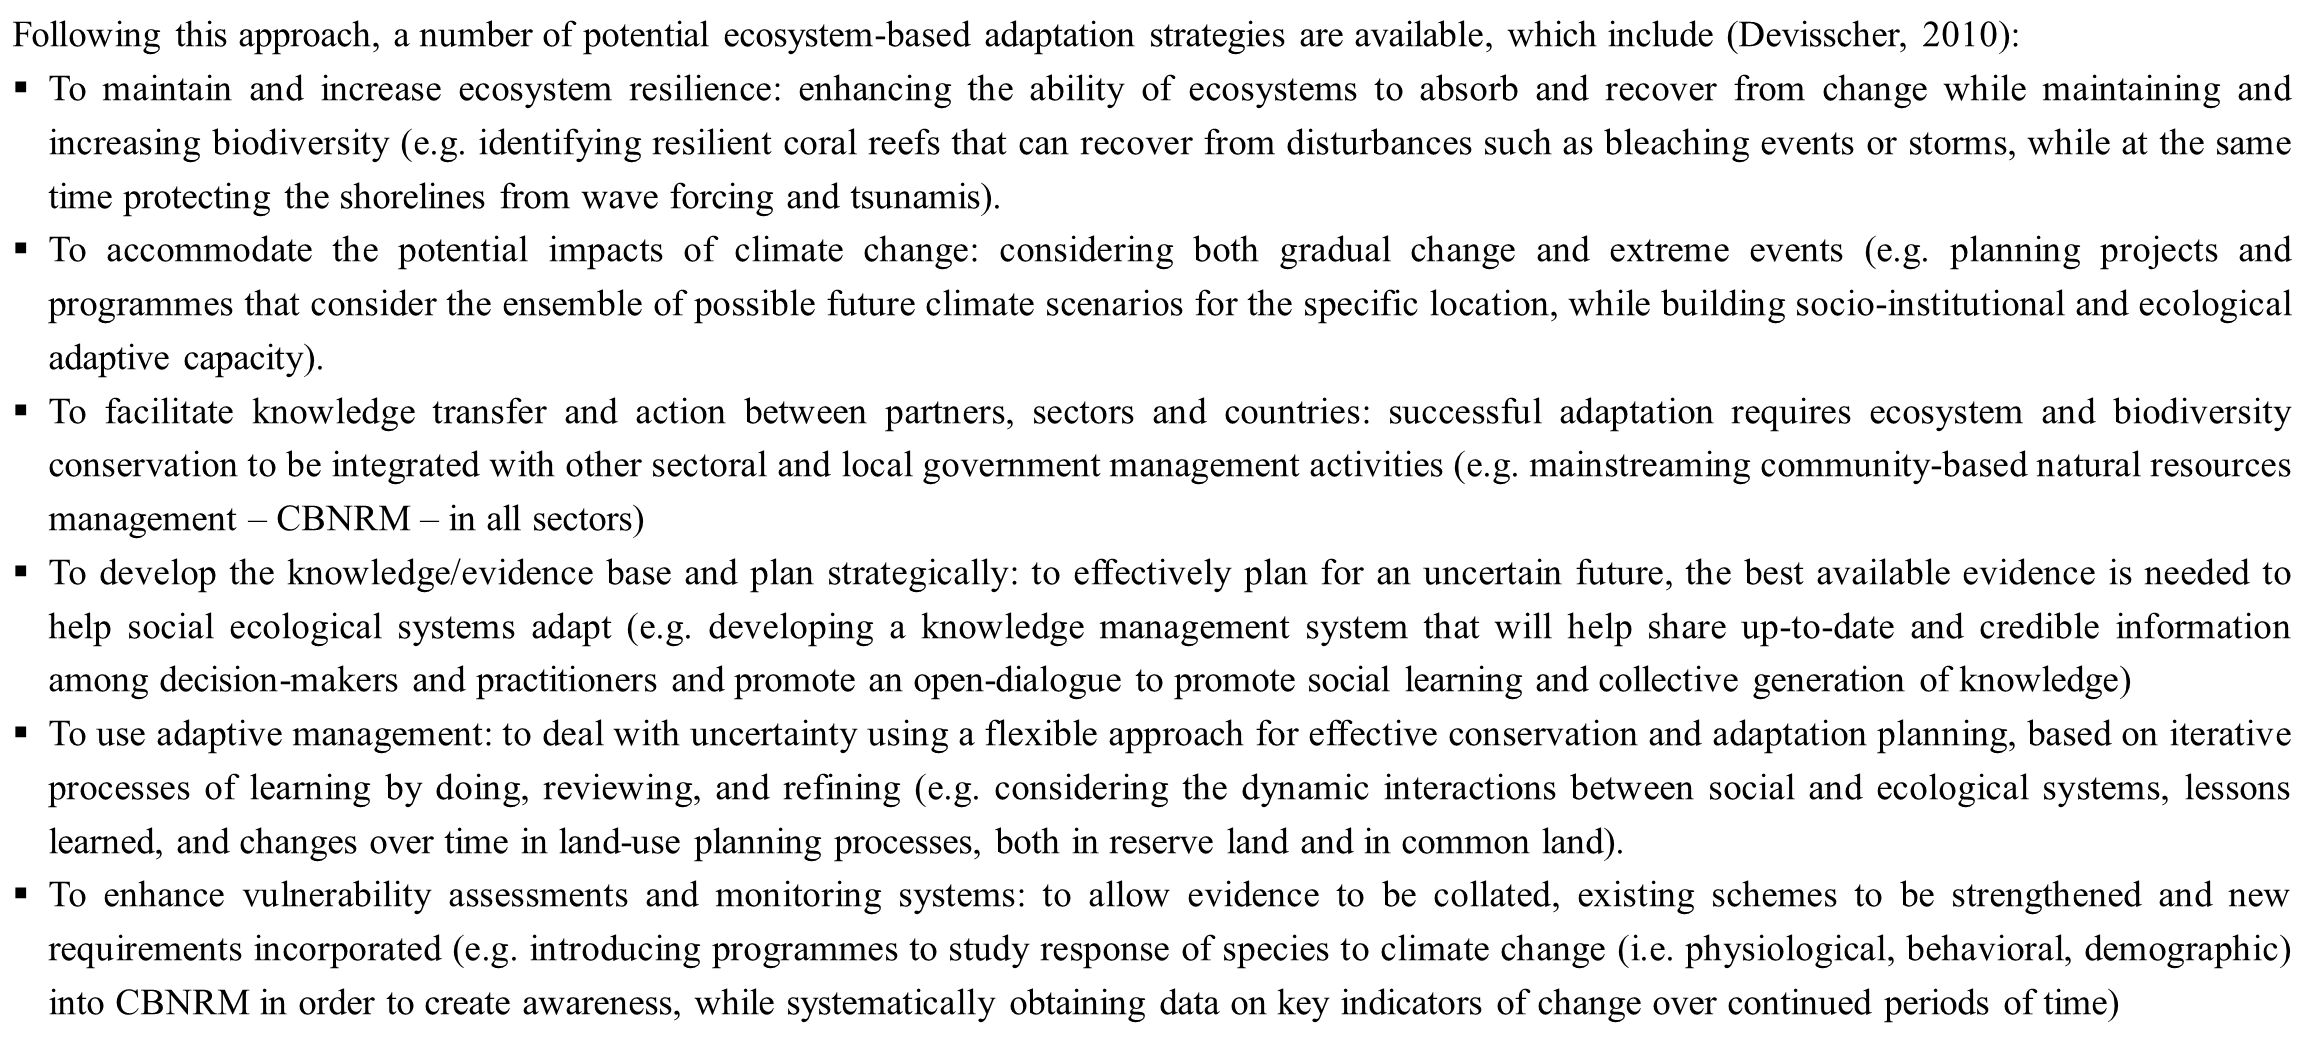 Following this approach, a number of potential ecosystem-based adaptation strategies are available, which include (Devisscher, 2010):